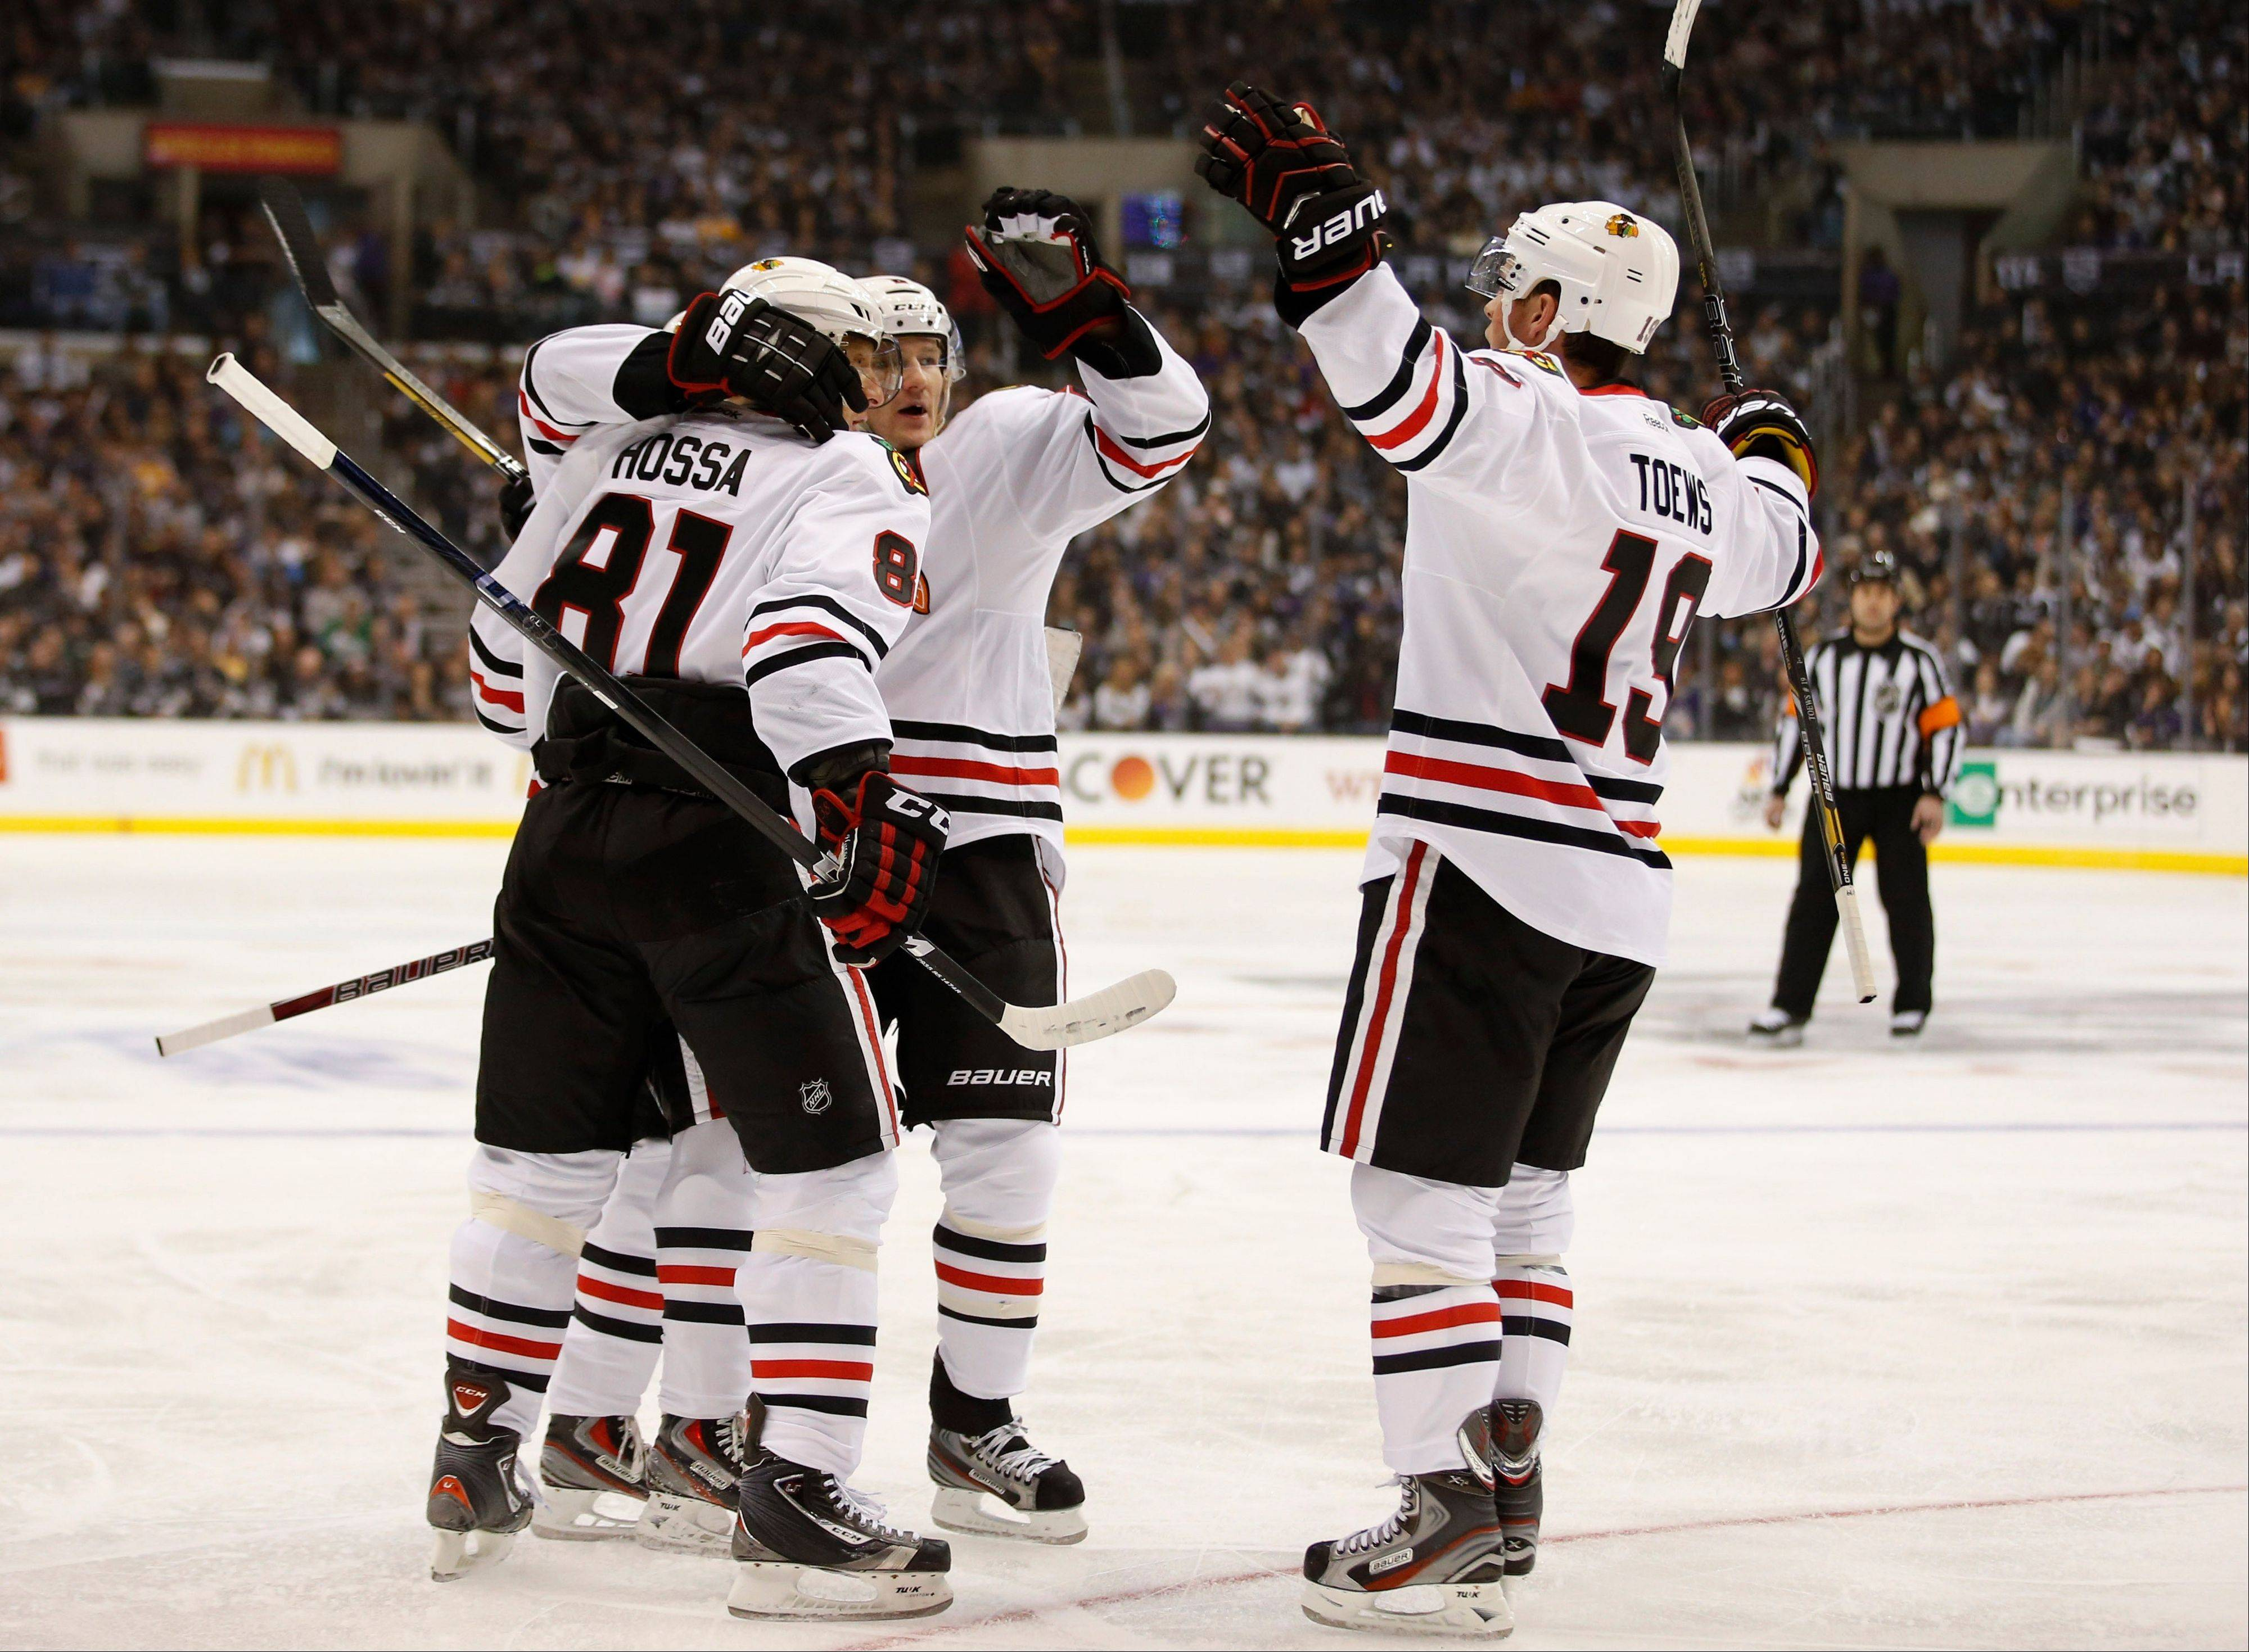 Blackhawks winger Marian Hossa (81), Patrick Kane, Duncan Keith, second from right, and Jonathan Toews celebrate a goal by Kane against the Los Angeles Kings in Los Angeles on Jan. 19. It was banner-raising night for the defending Stanley Cup champion Kings, and the Blackhawks won 5-2.